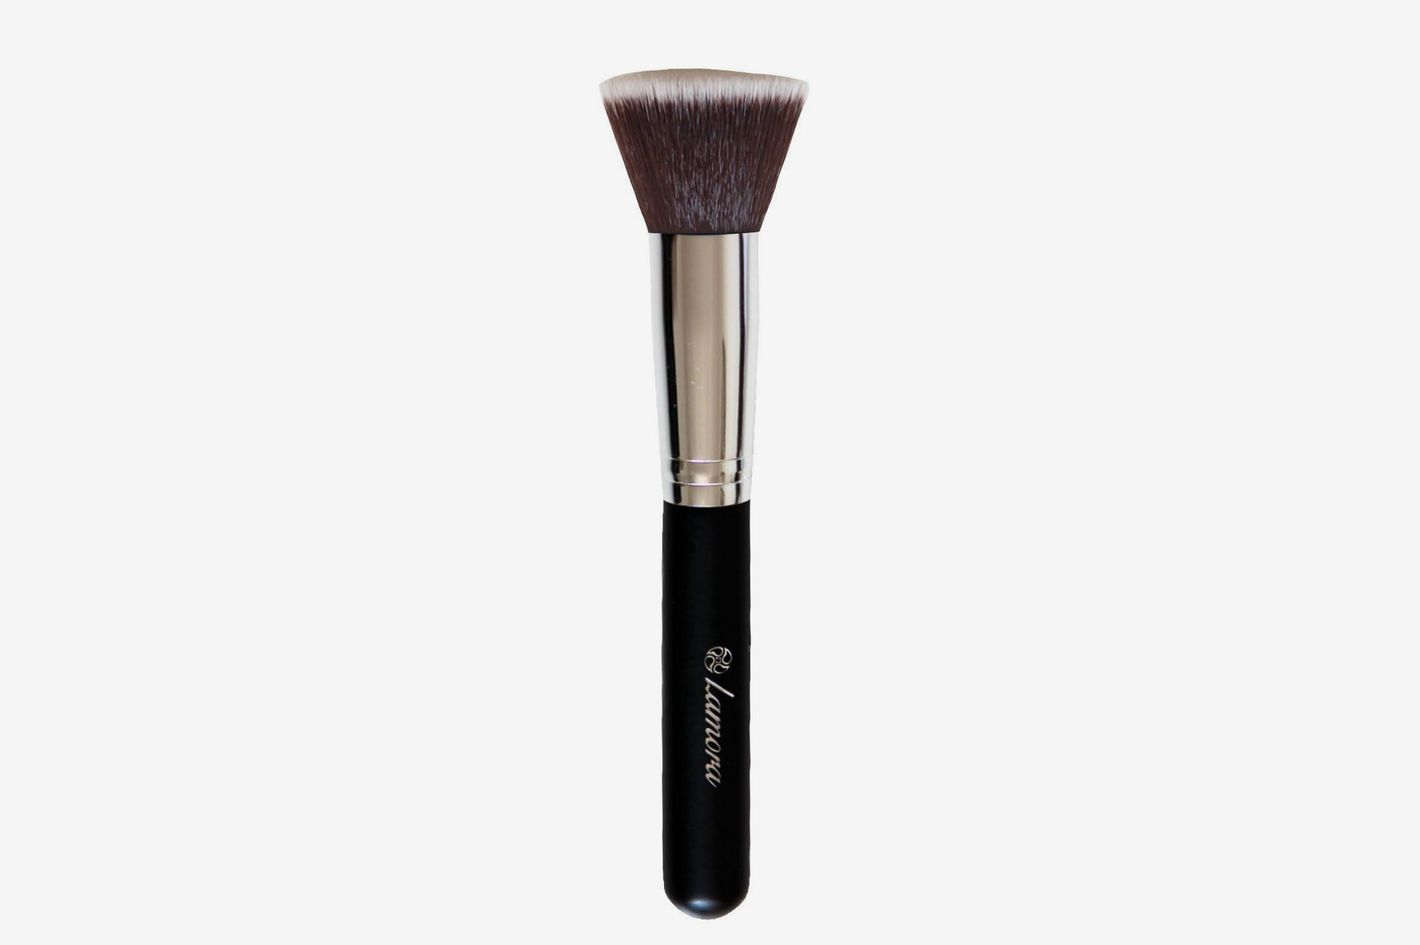 Lamora Flat Top Kabuki Foundation Makeup Brush